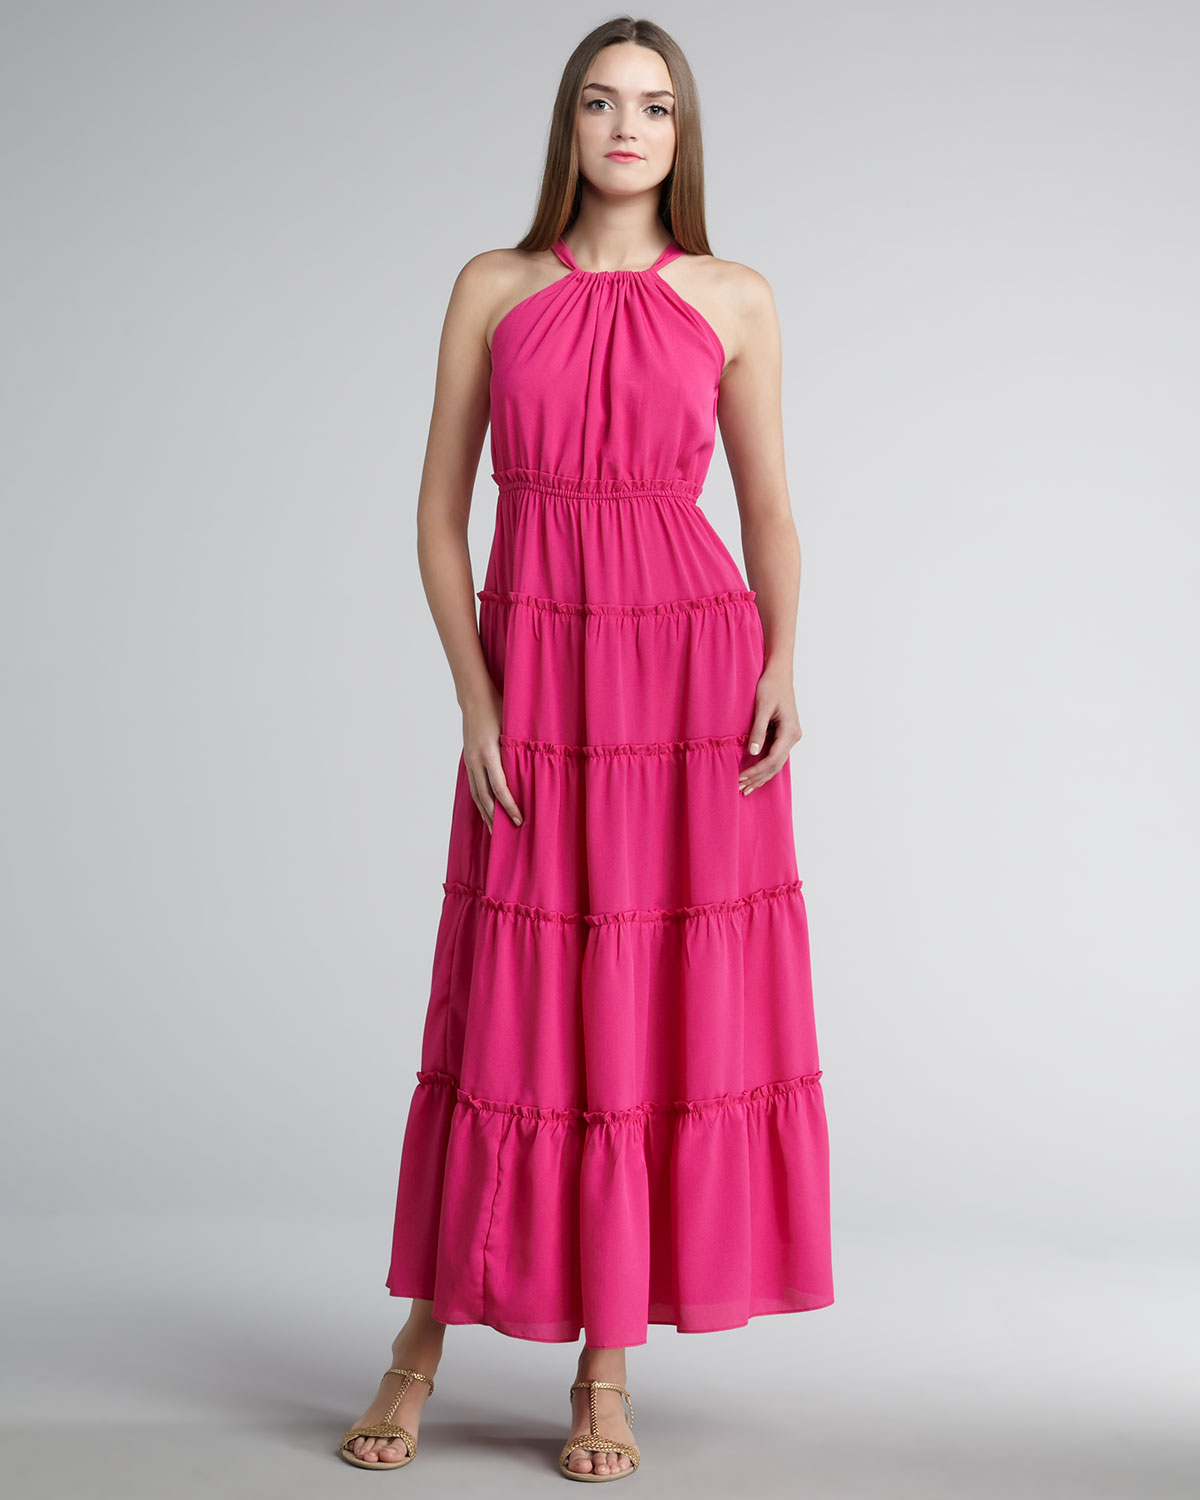 T-bags Tiered Maxi Dress in Pink - Lyst